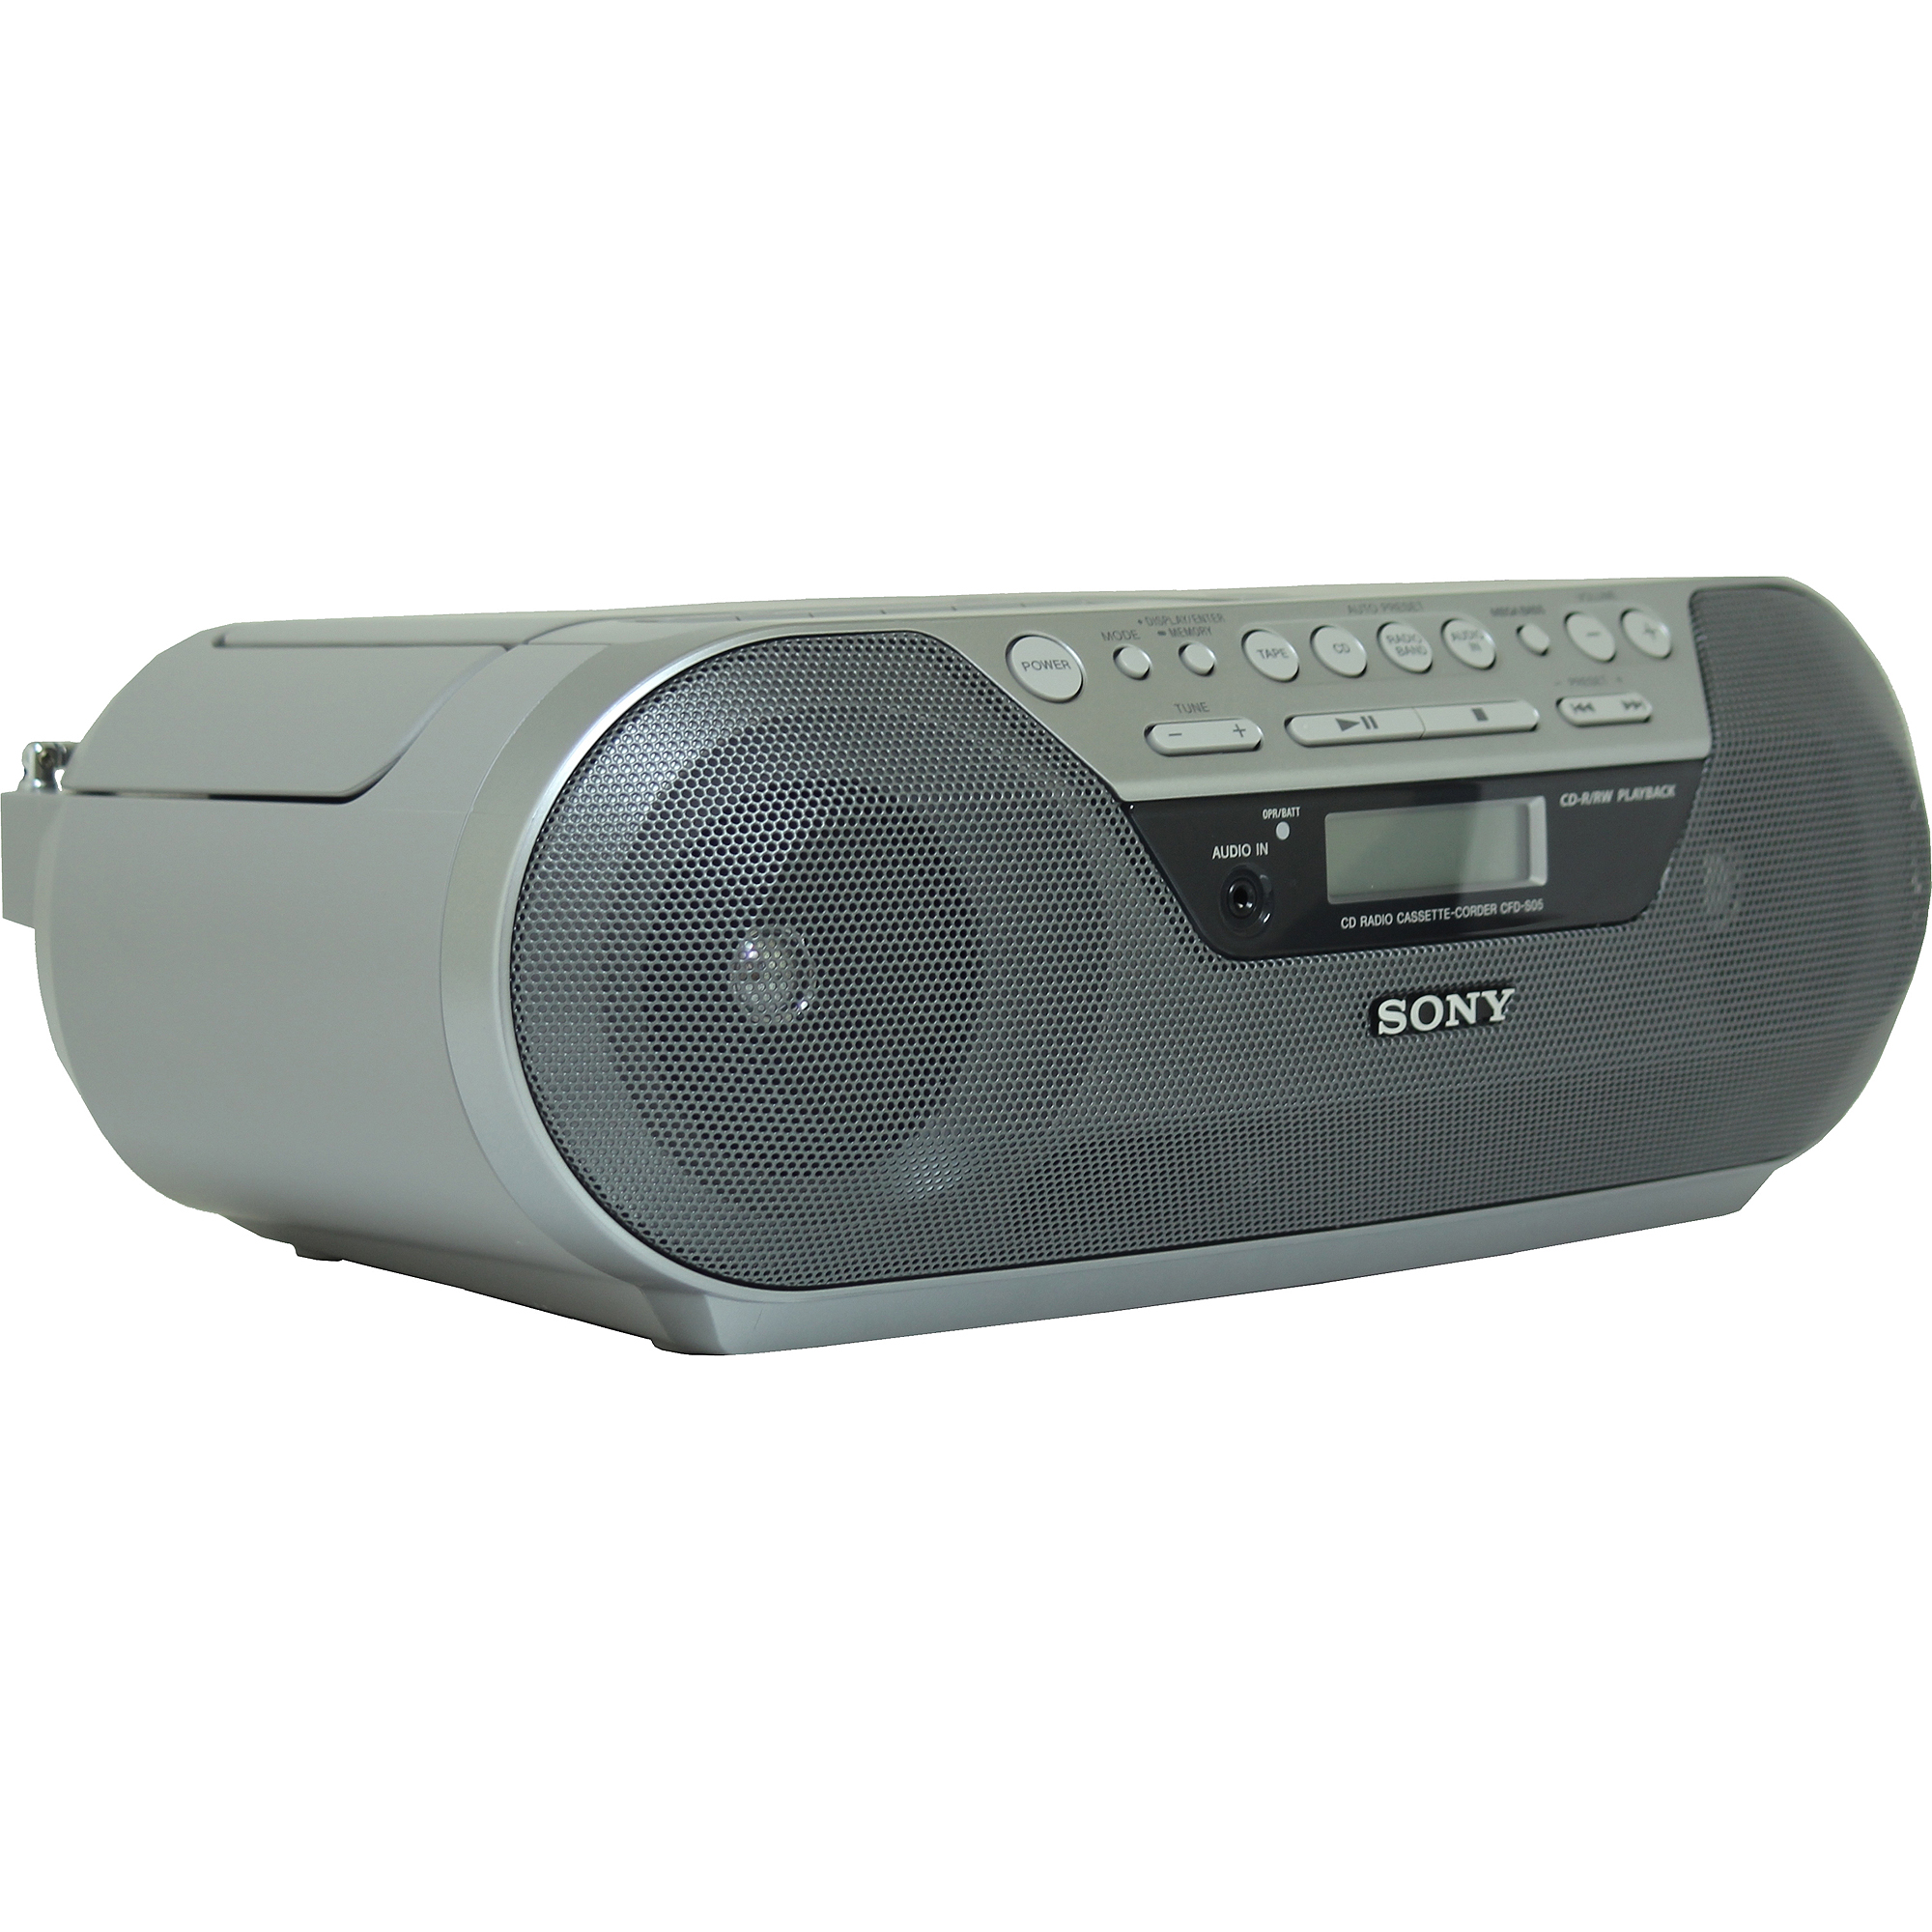 Sony CD Radio and Cassette Player, CFD-S05, Refurbished